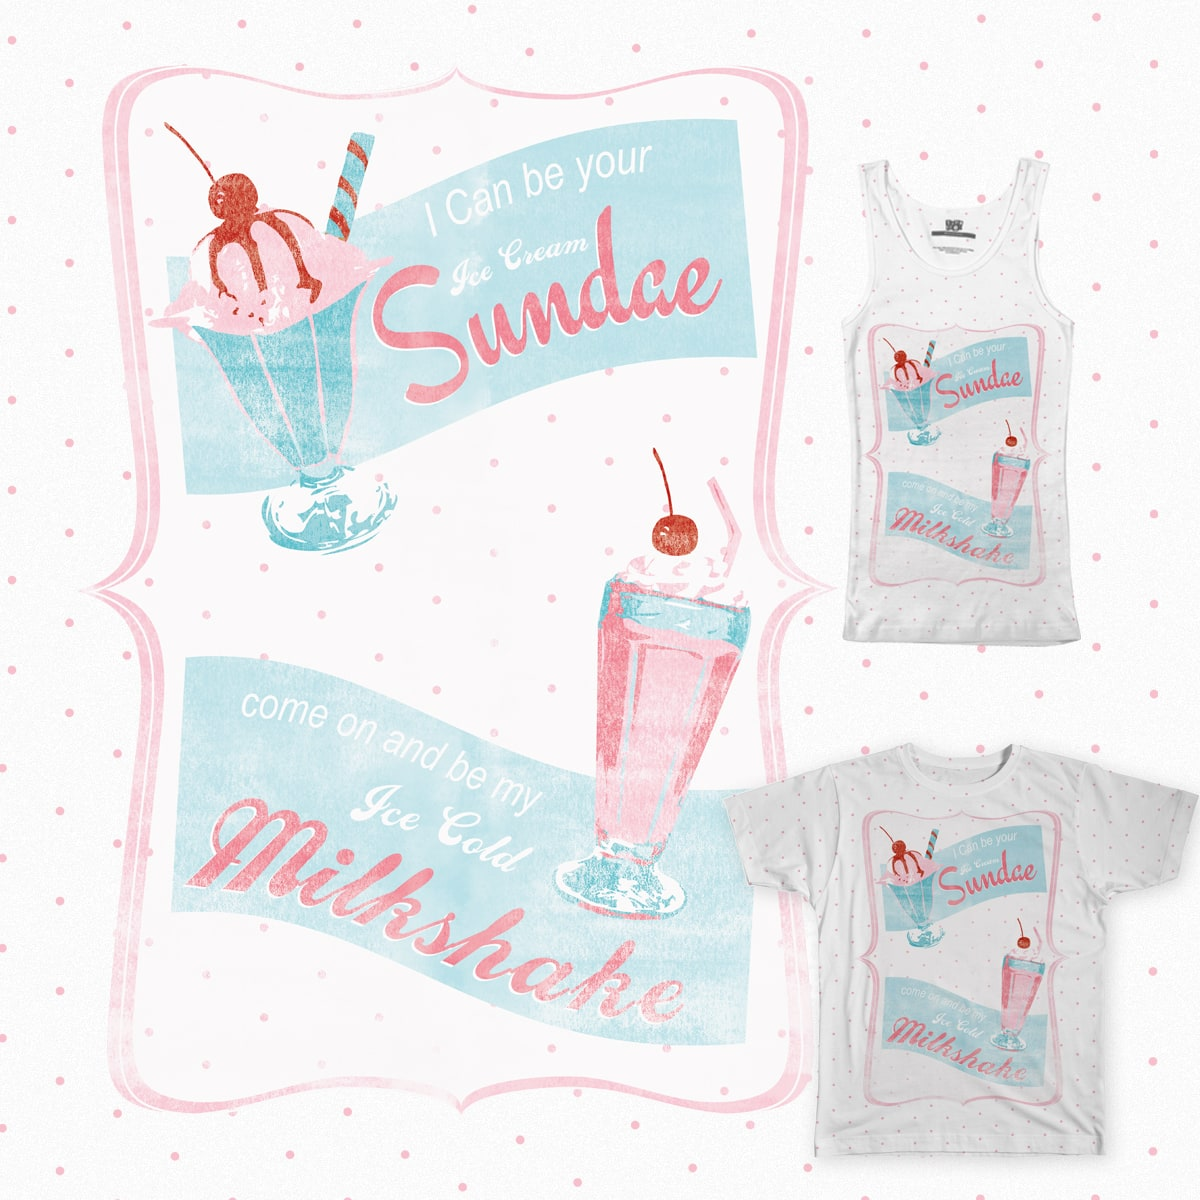 Milkshakes & Sundaes by gmockett on Threadless